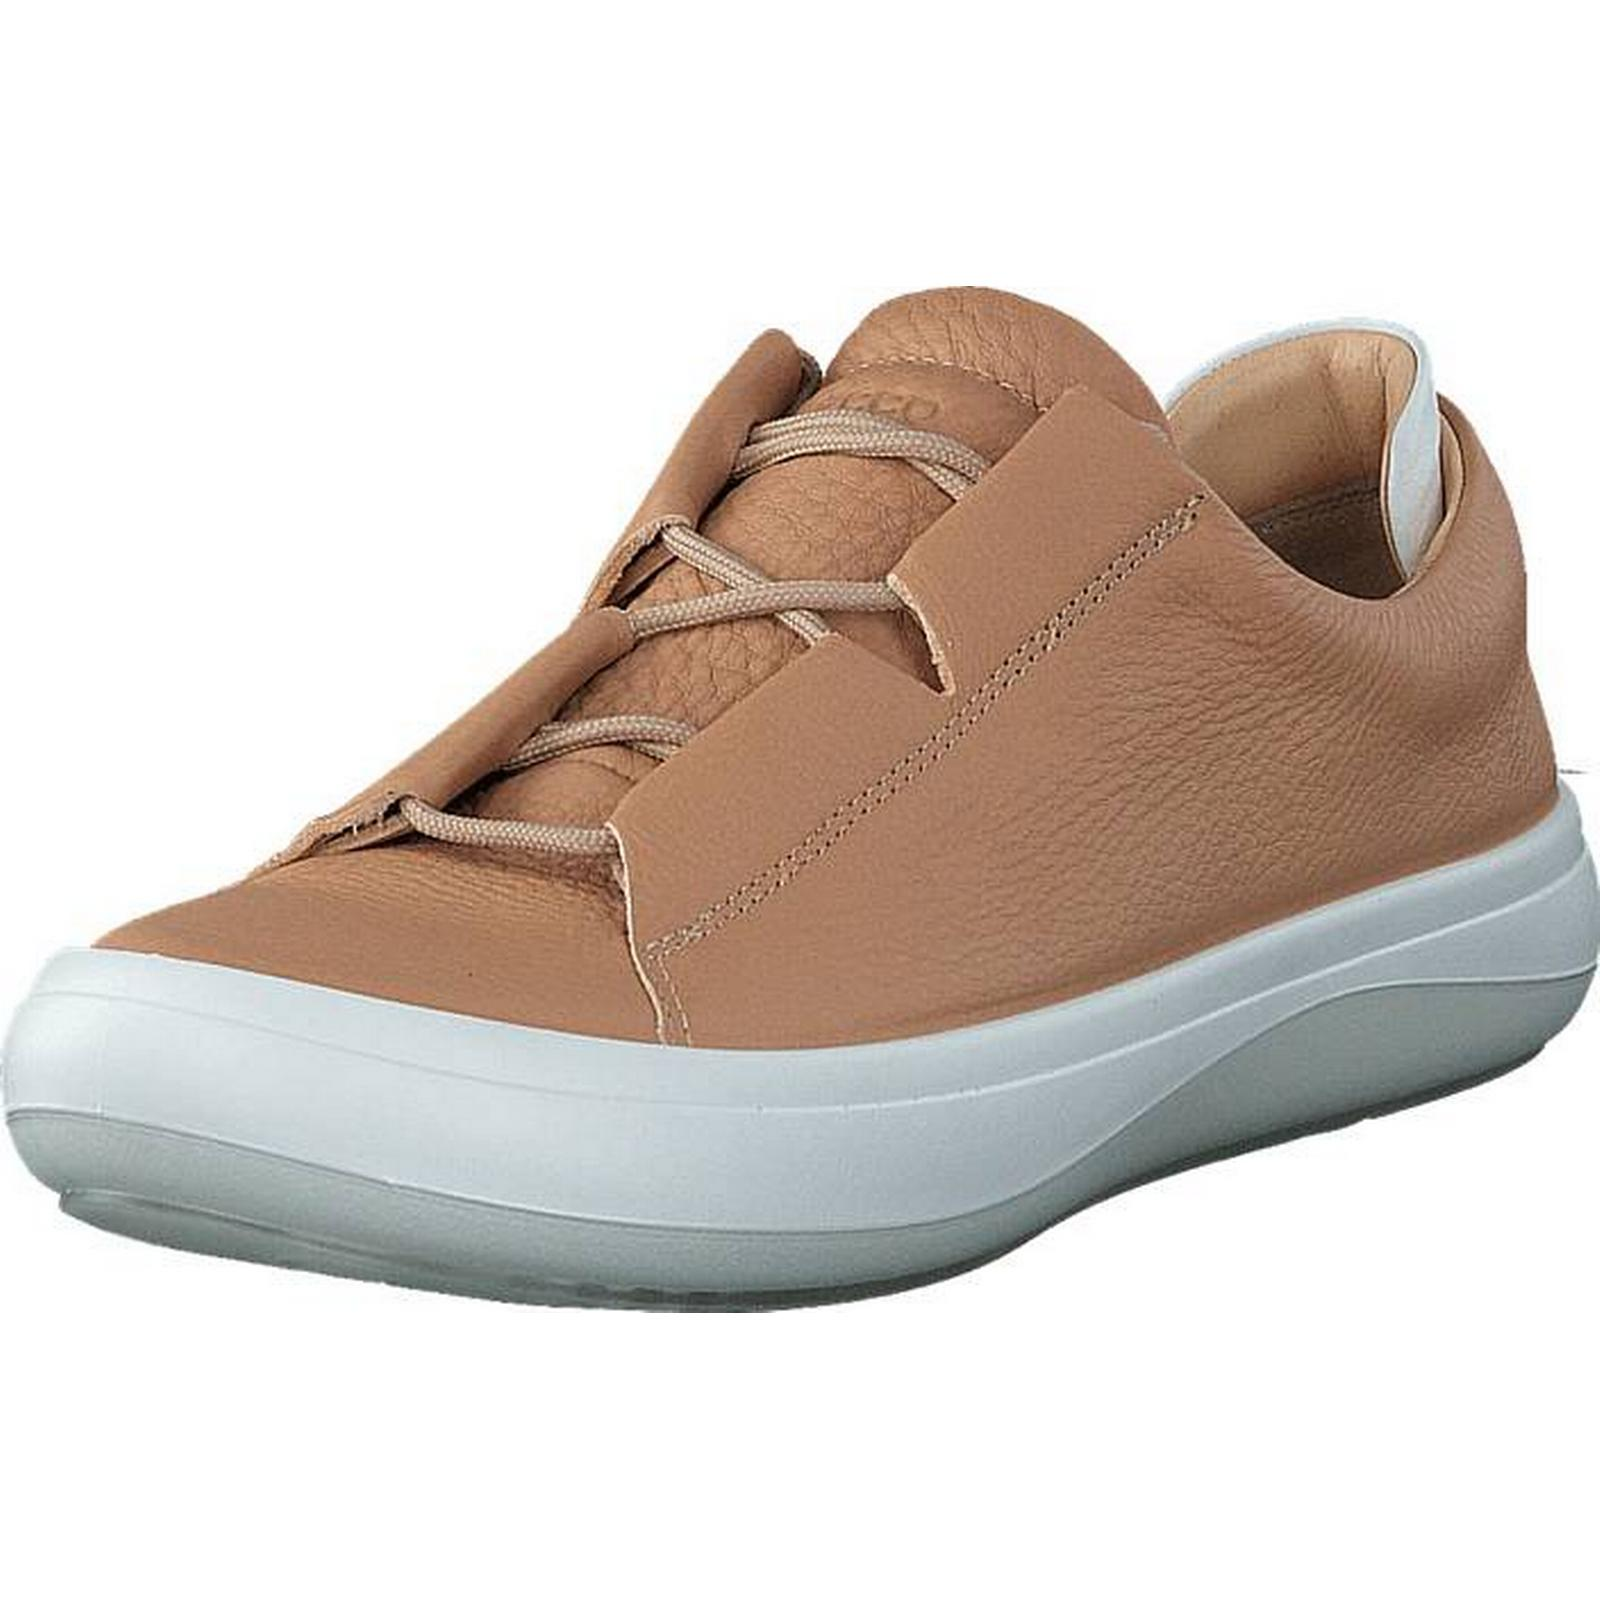 Ecco 431003 Kin-Hin Kin-Hin 431003 Volluto, Shoes, Trainers & Sport Shoes , Trainers, Brown, Female, 37 d93e73